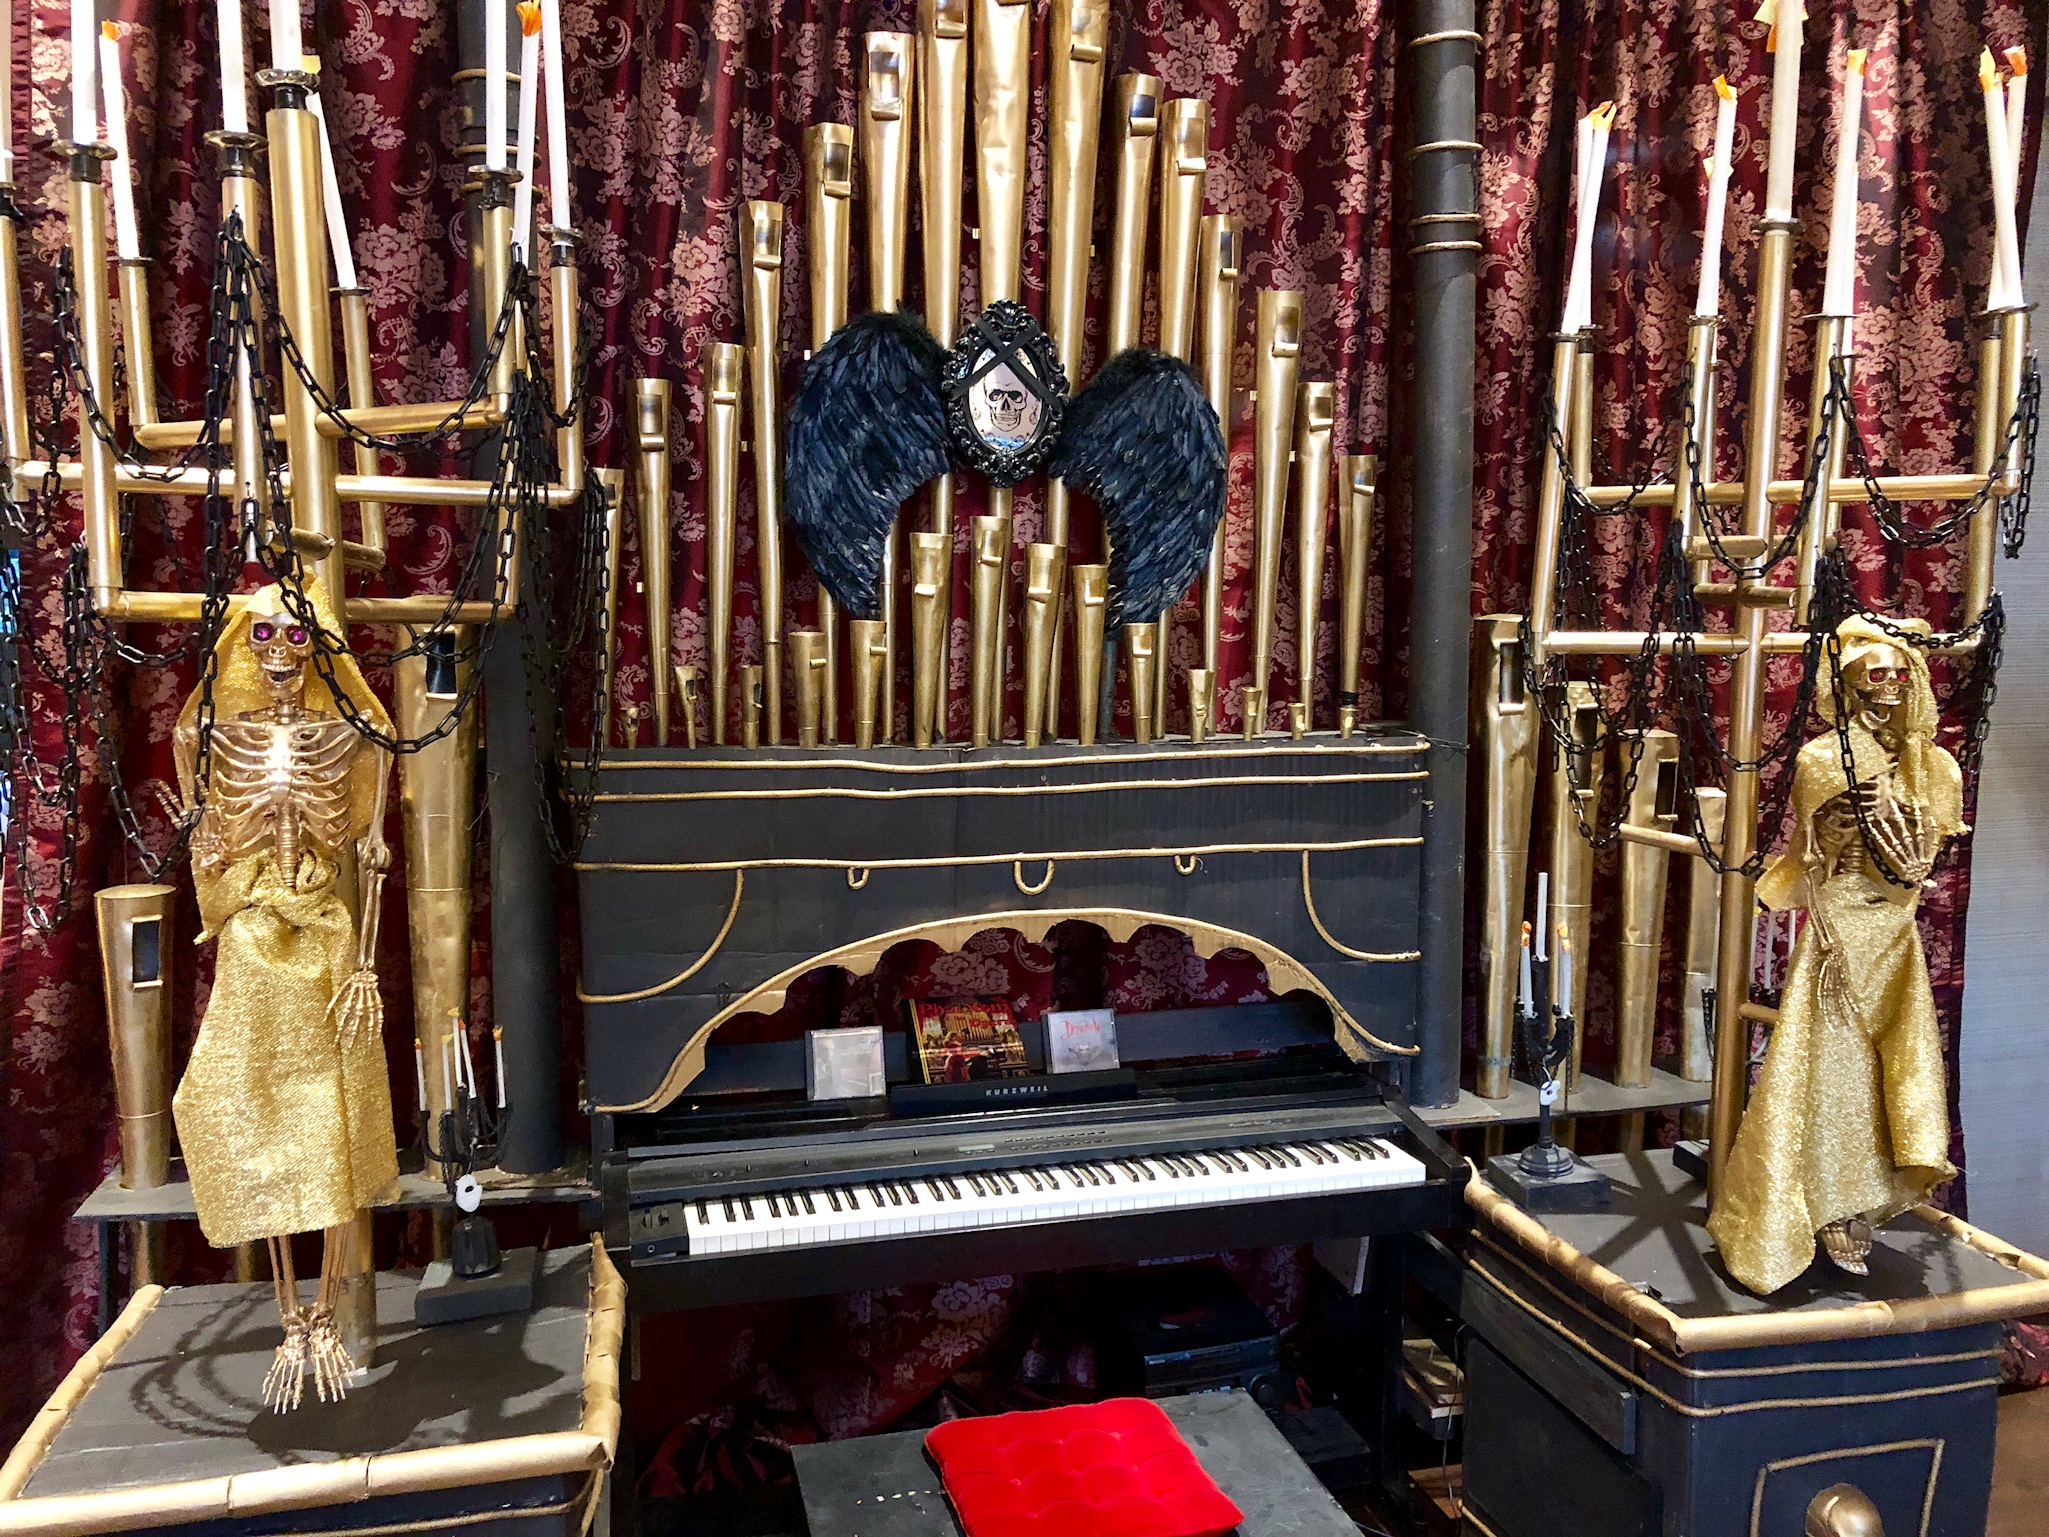 Decorations - Organ 01